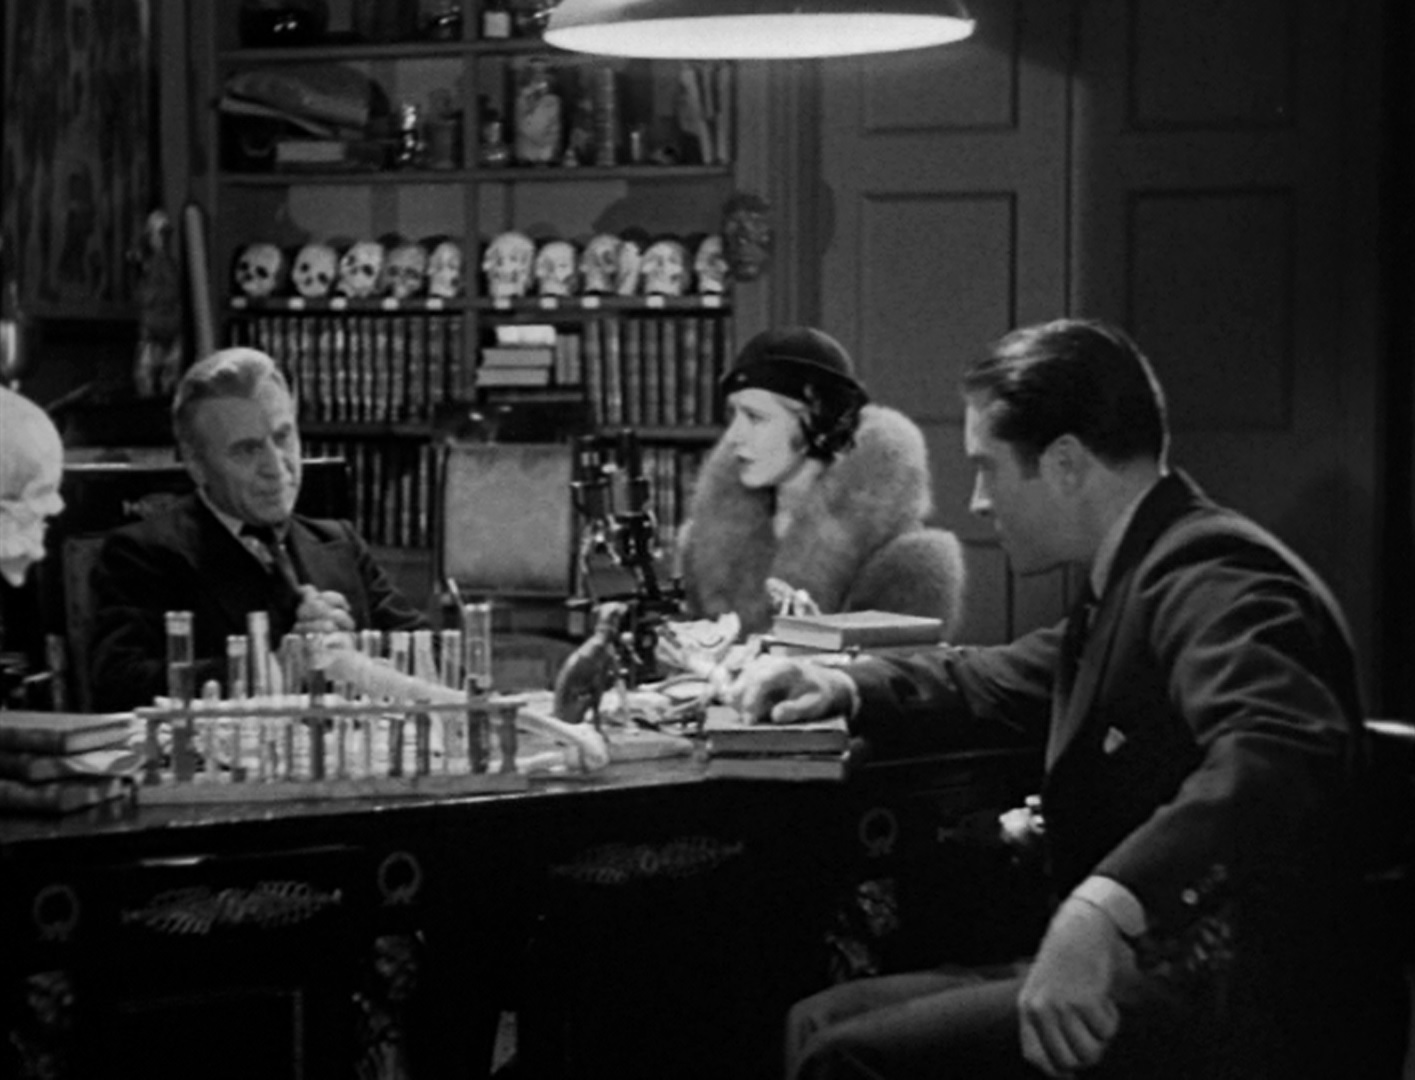 frankenstein archetypal Directed by james whale with colin clive, mae clarke, boris karloff, john boles an obsessed scientist assembles a living being from parts of exhumed corpses.